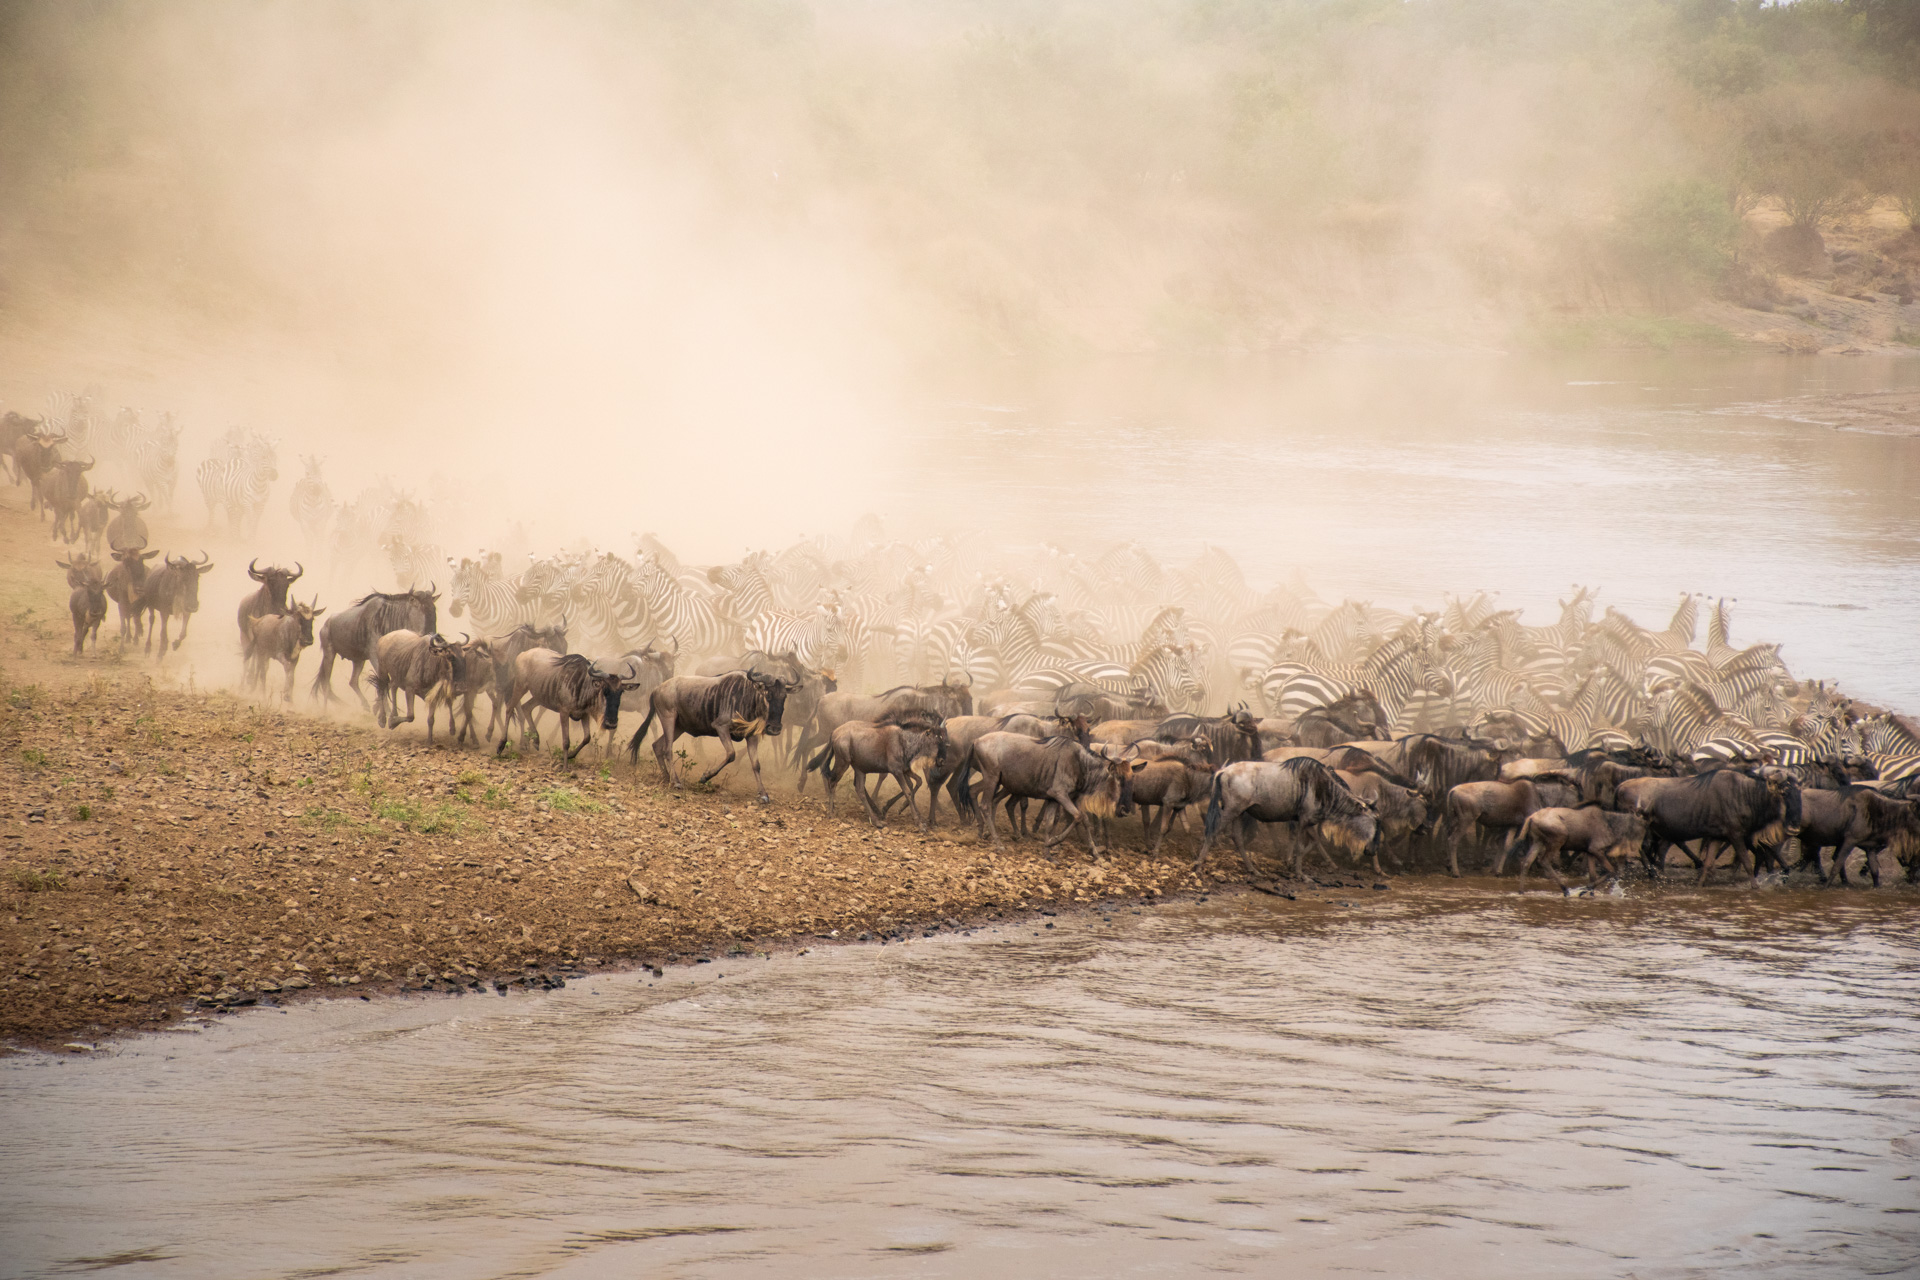 Chaotic river crossing